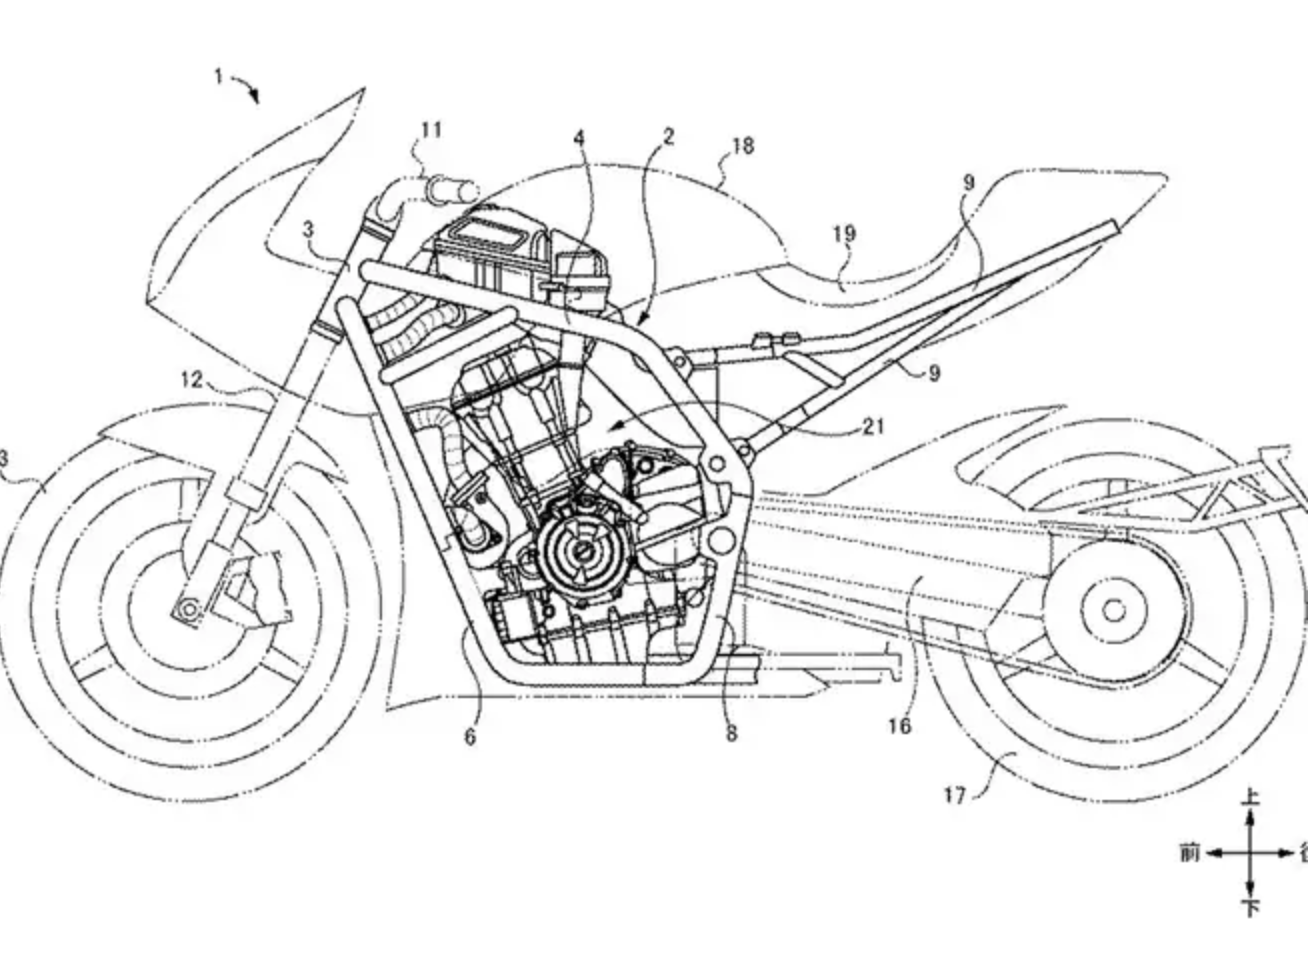 Is A Suzuki Twin Turbo Motorcycle On The Way